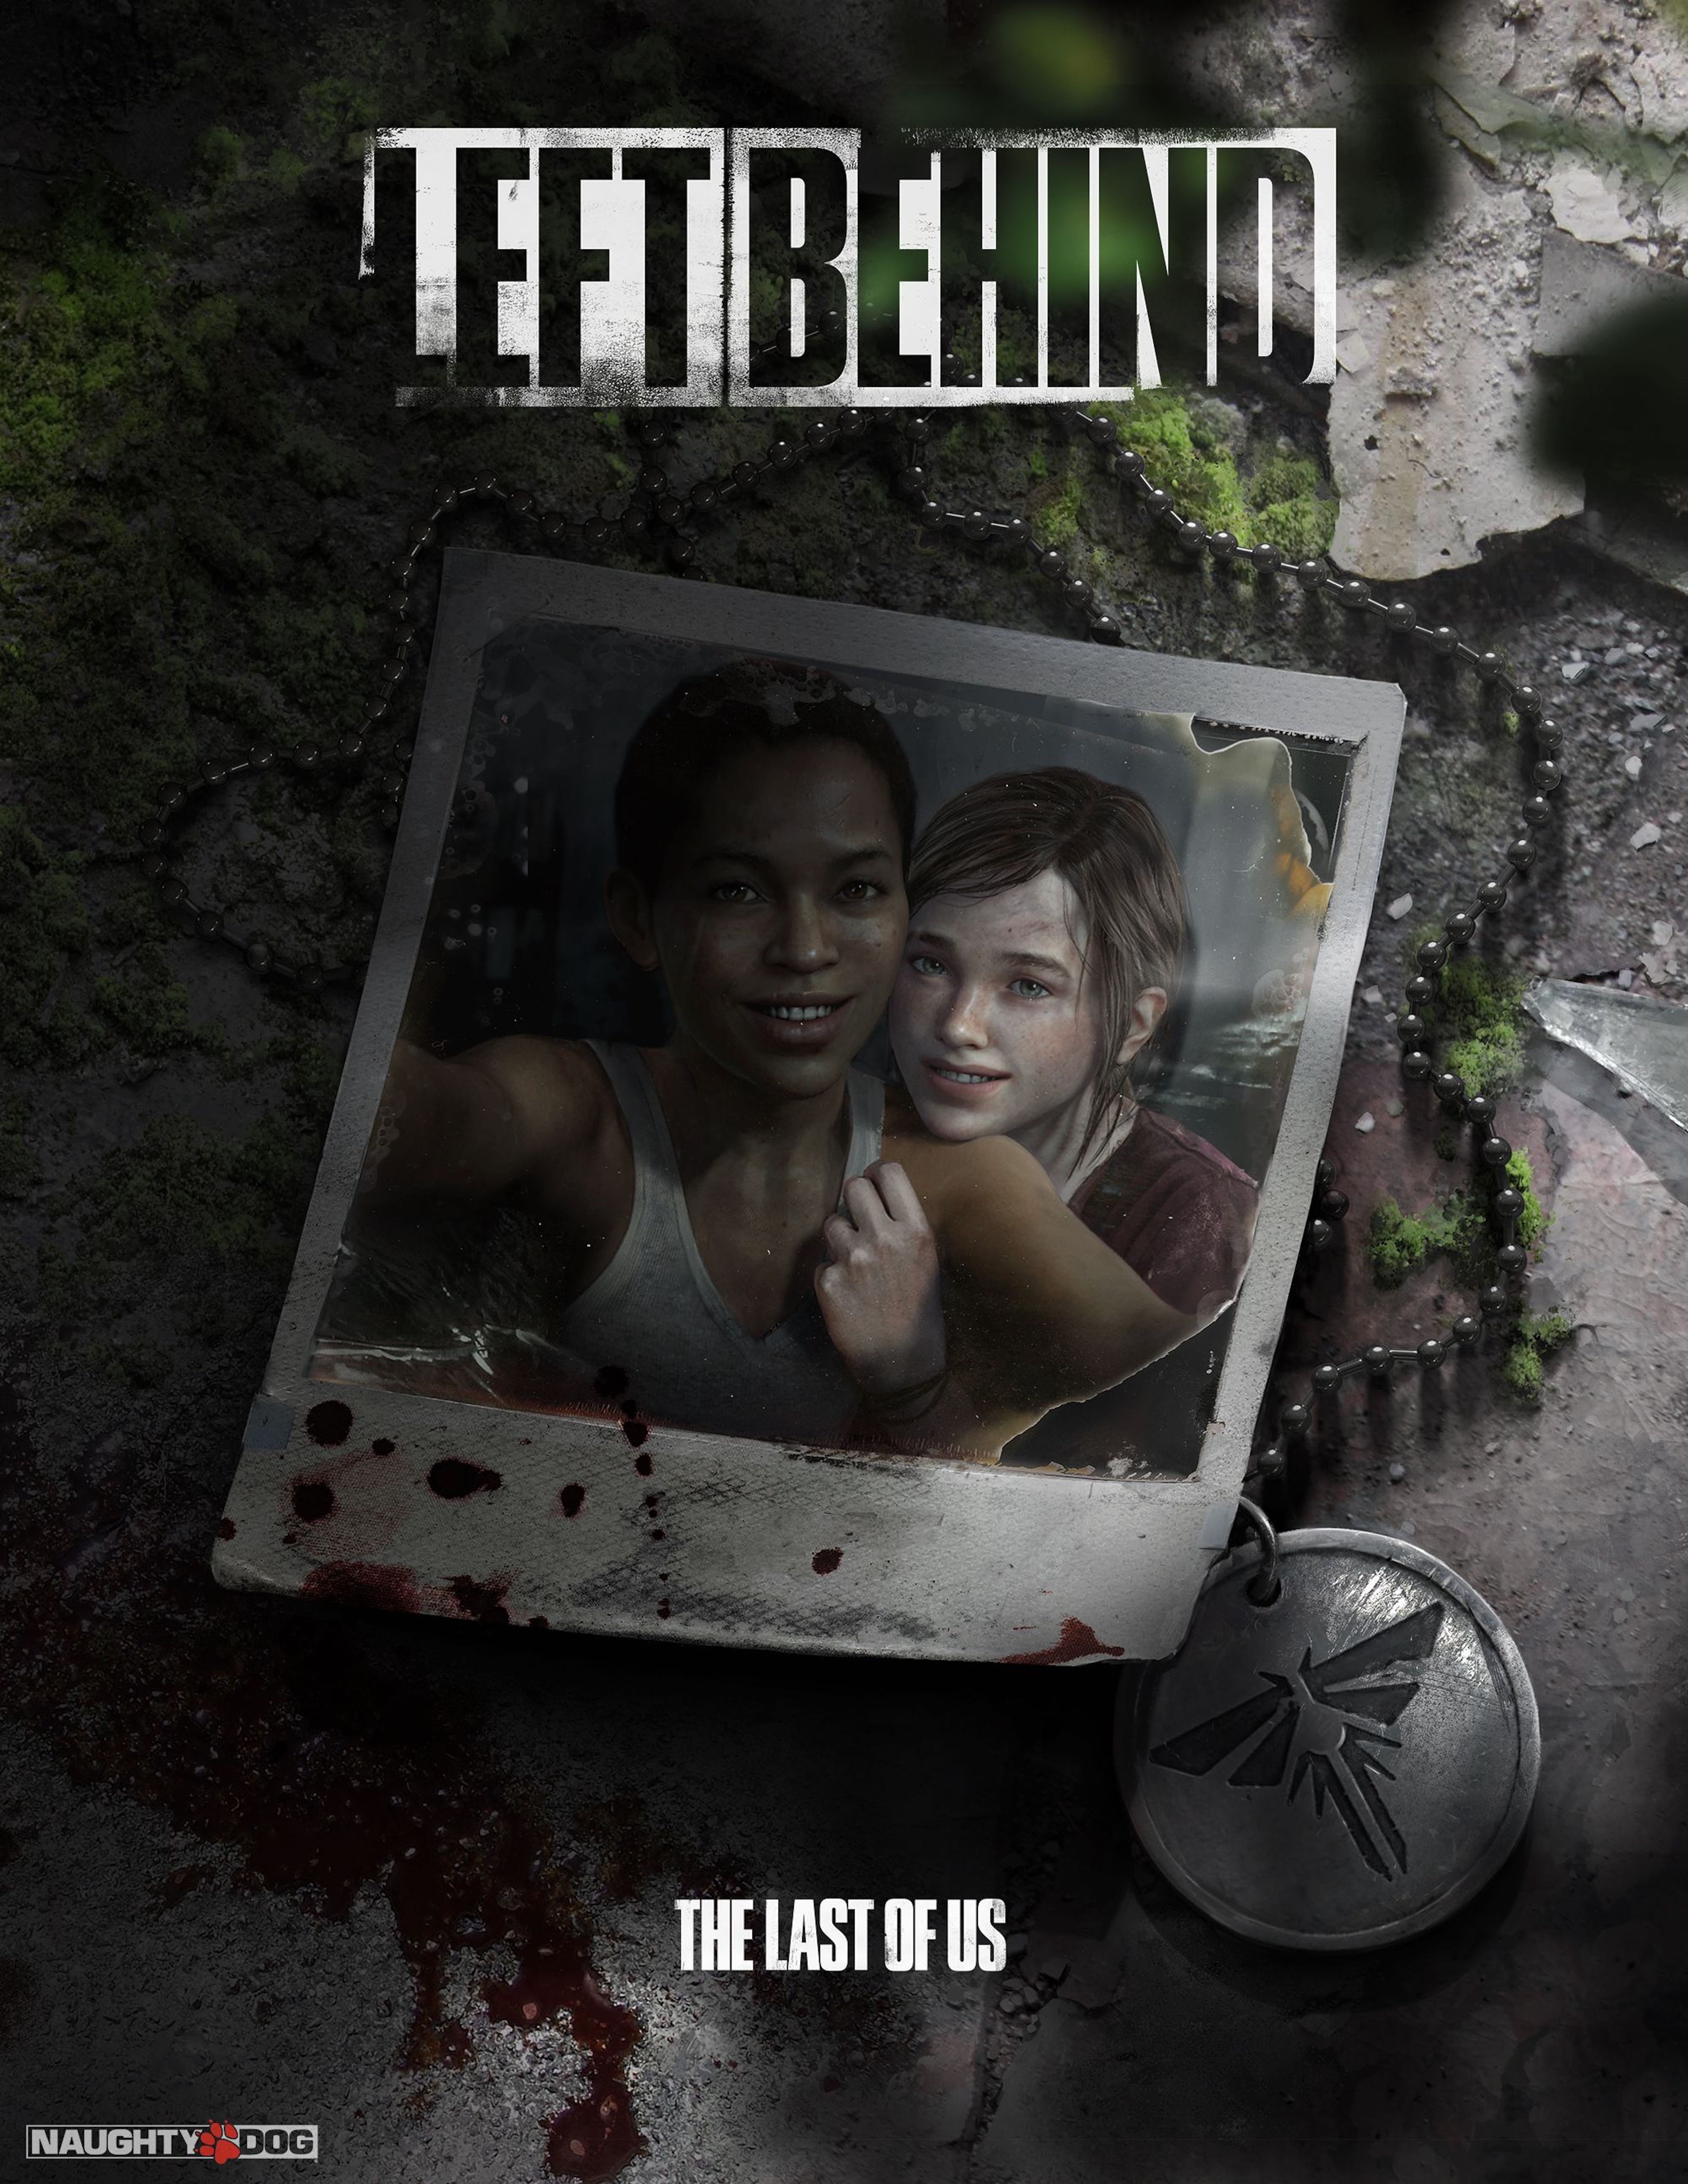 The Last Of Us Left Behind The Last Of Us Wiki FANDOM Powered - The last of us lake resort map